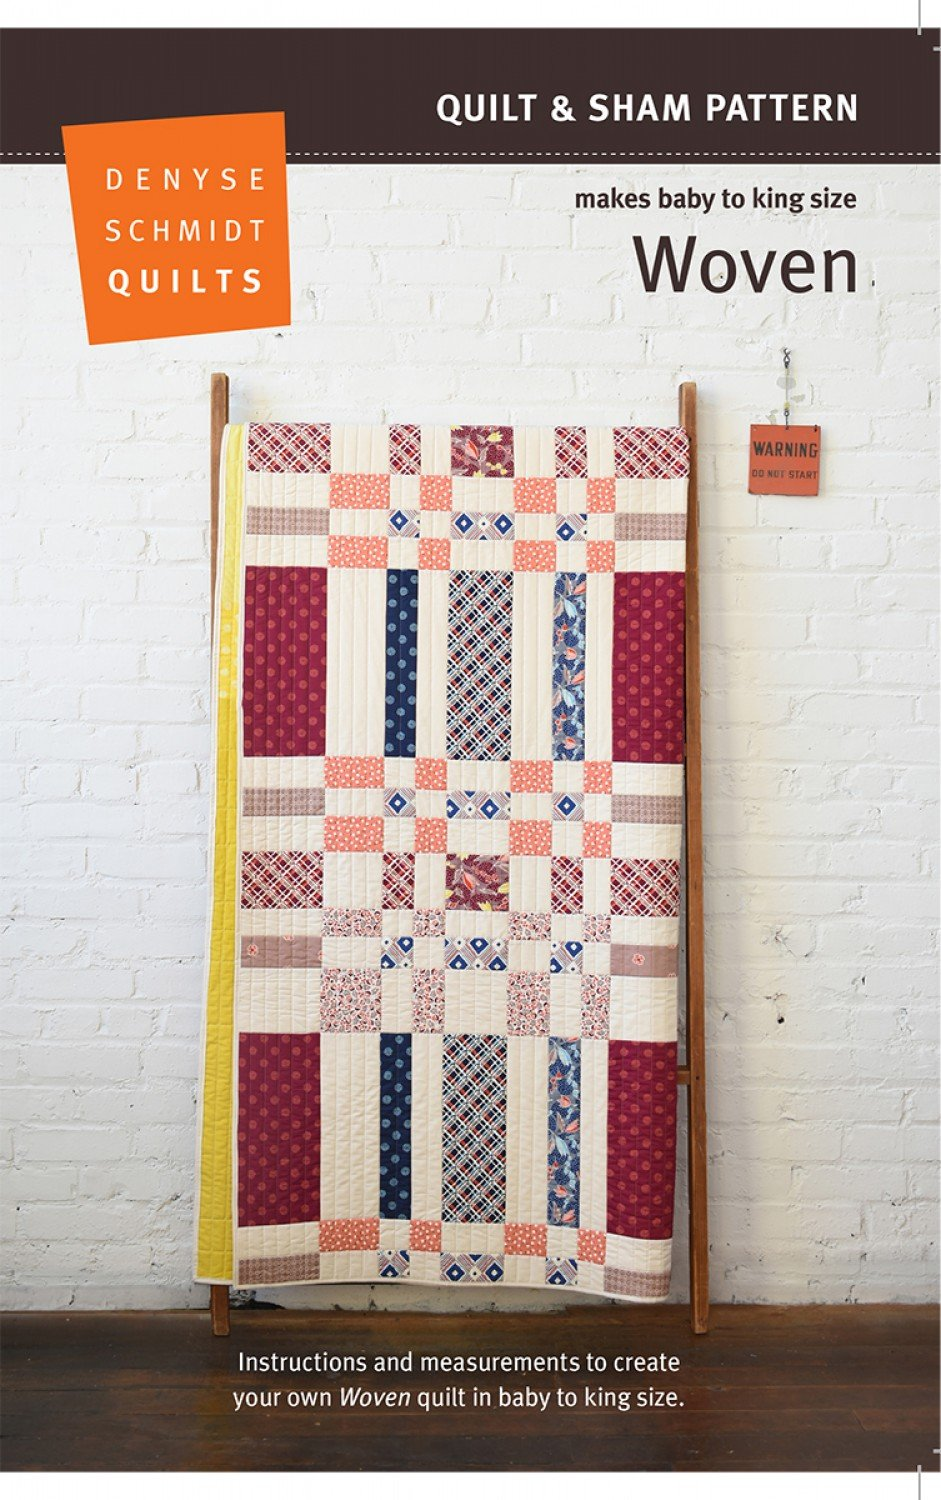 Denyse Schmidt Quilts - Woven